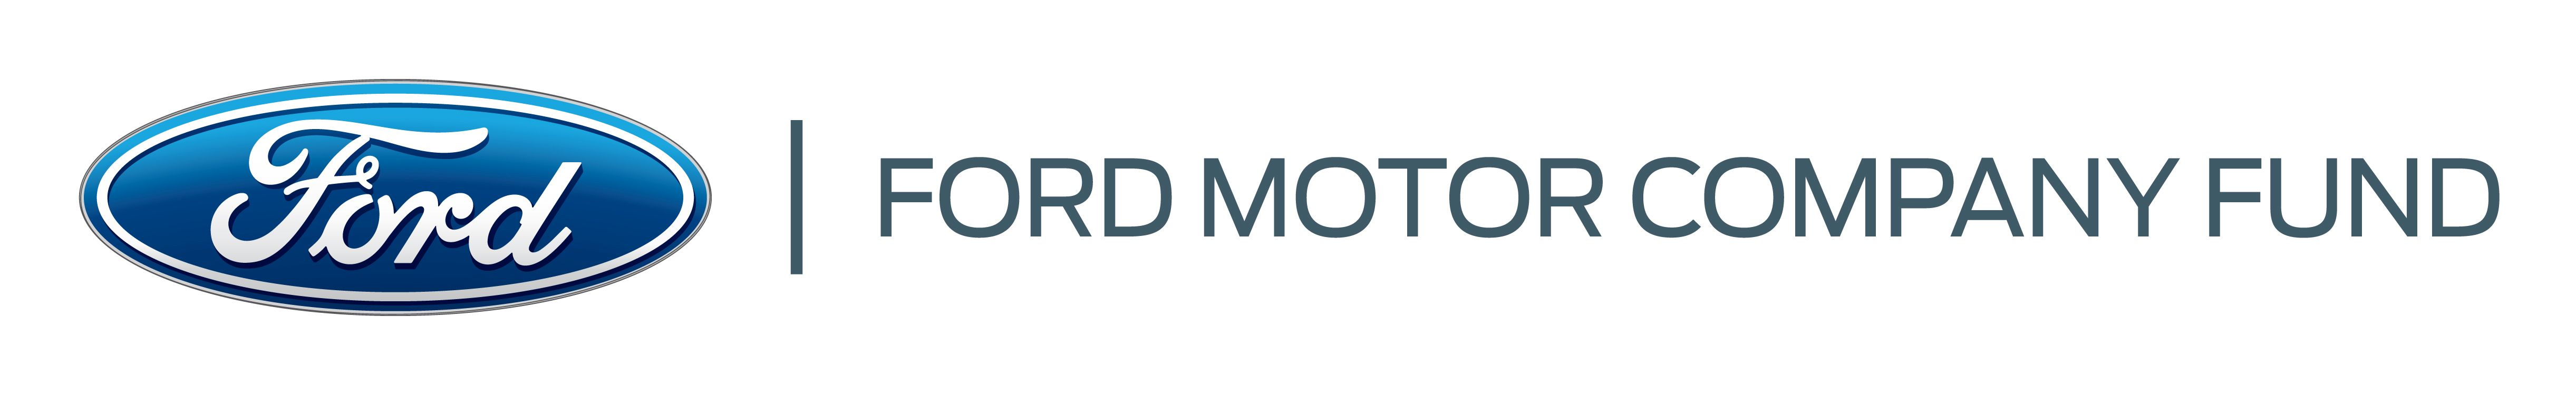 logo for Ford Motor Company Fund